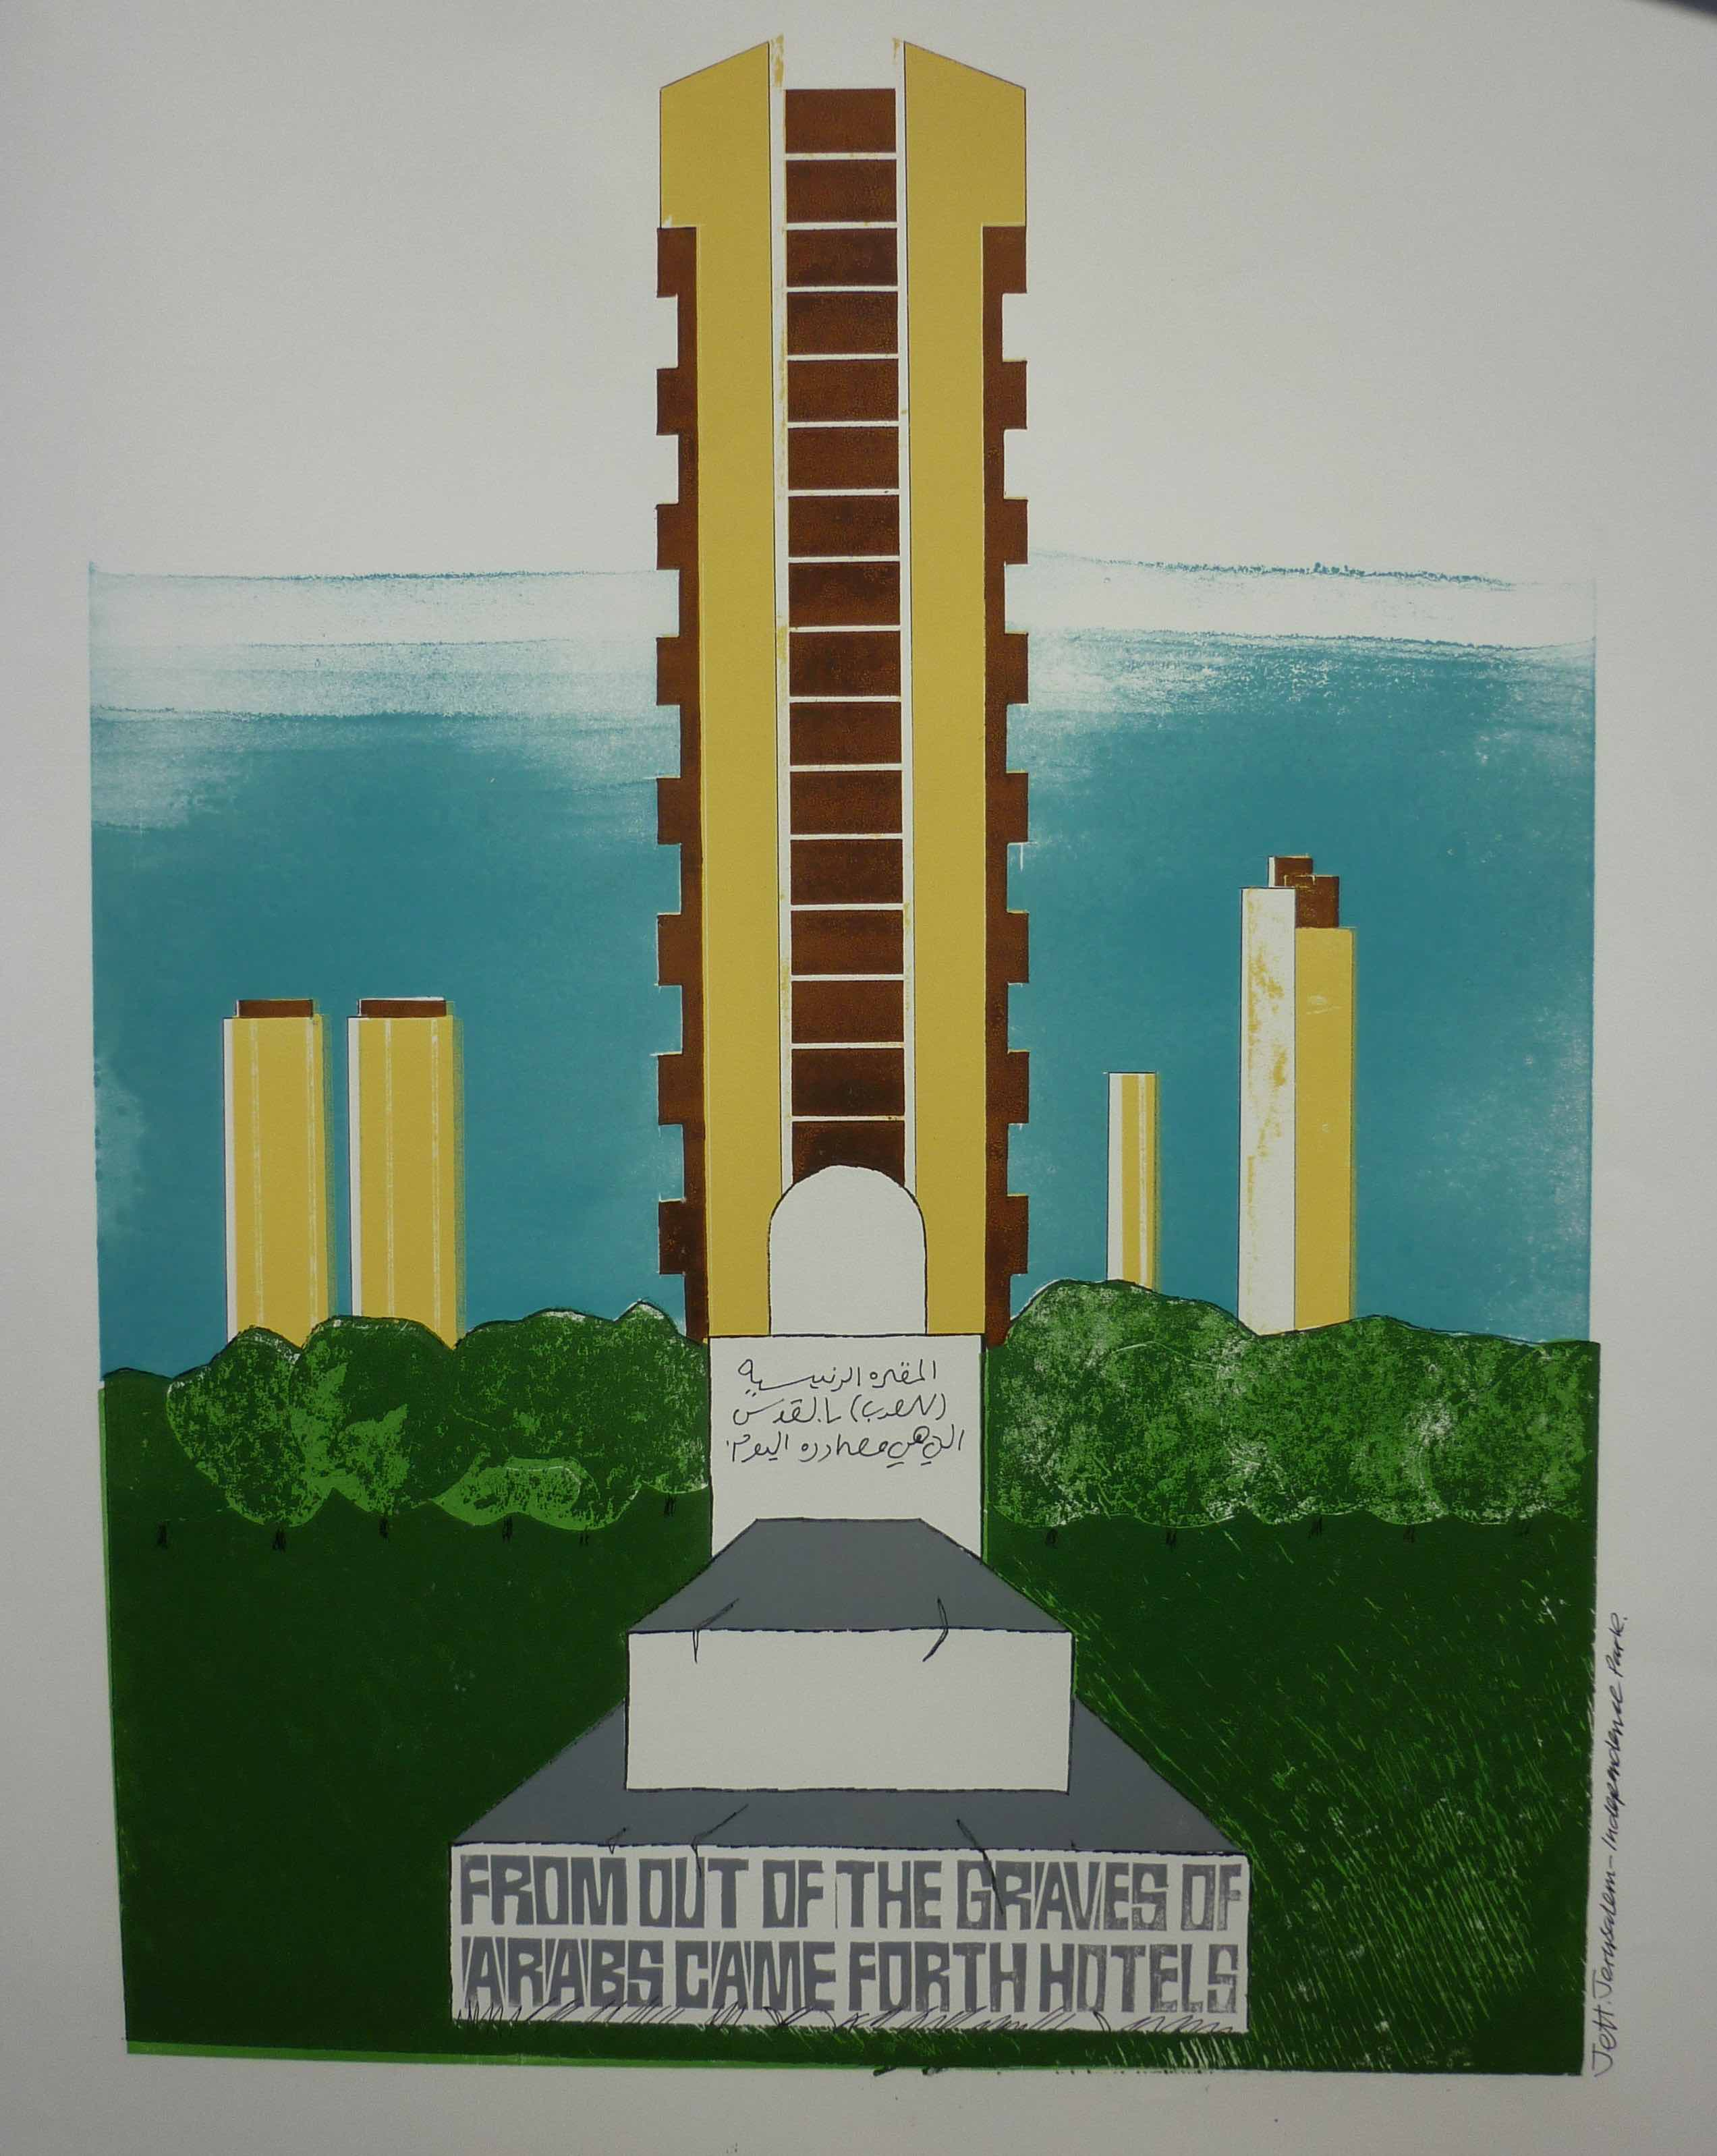 Jeff Perks- From out of the graves of Arabs came Hotels. Carboard and linocut.60x40cm